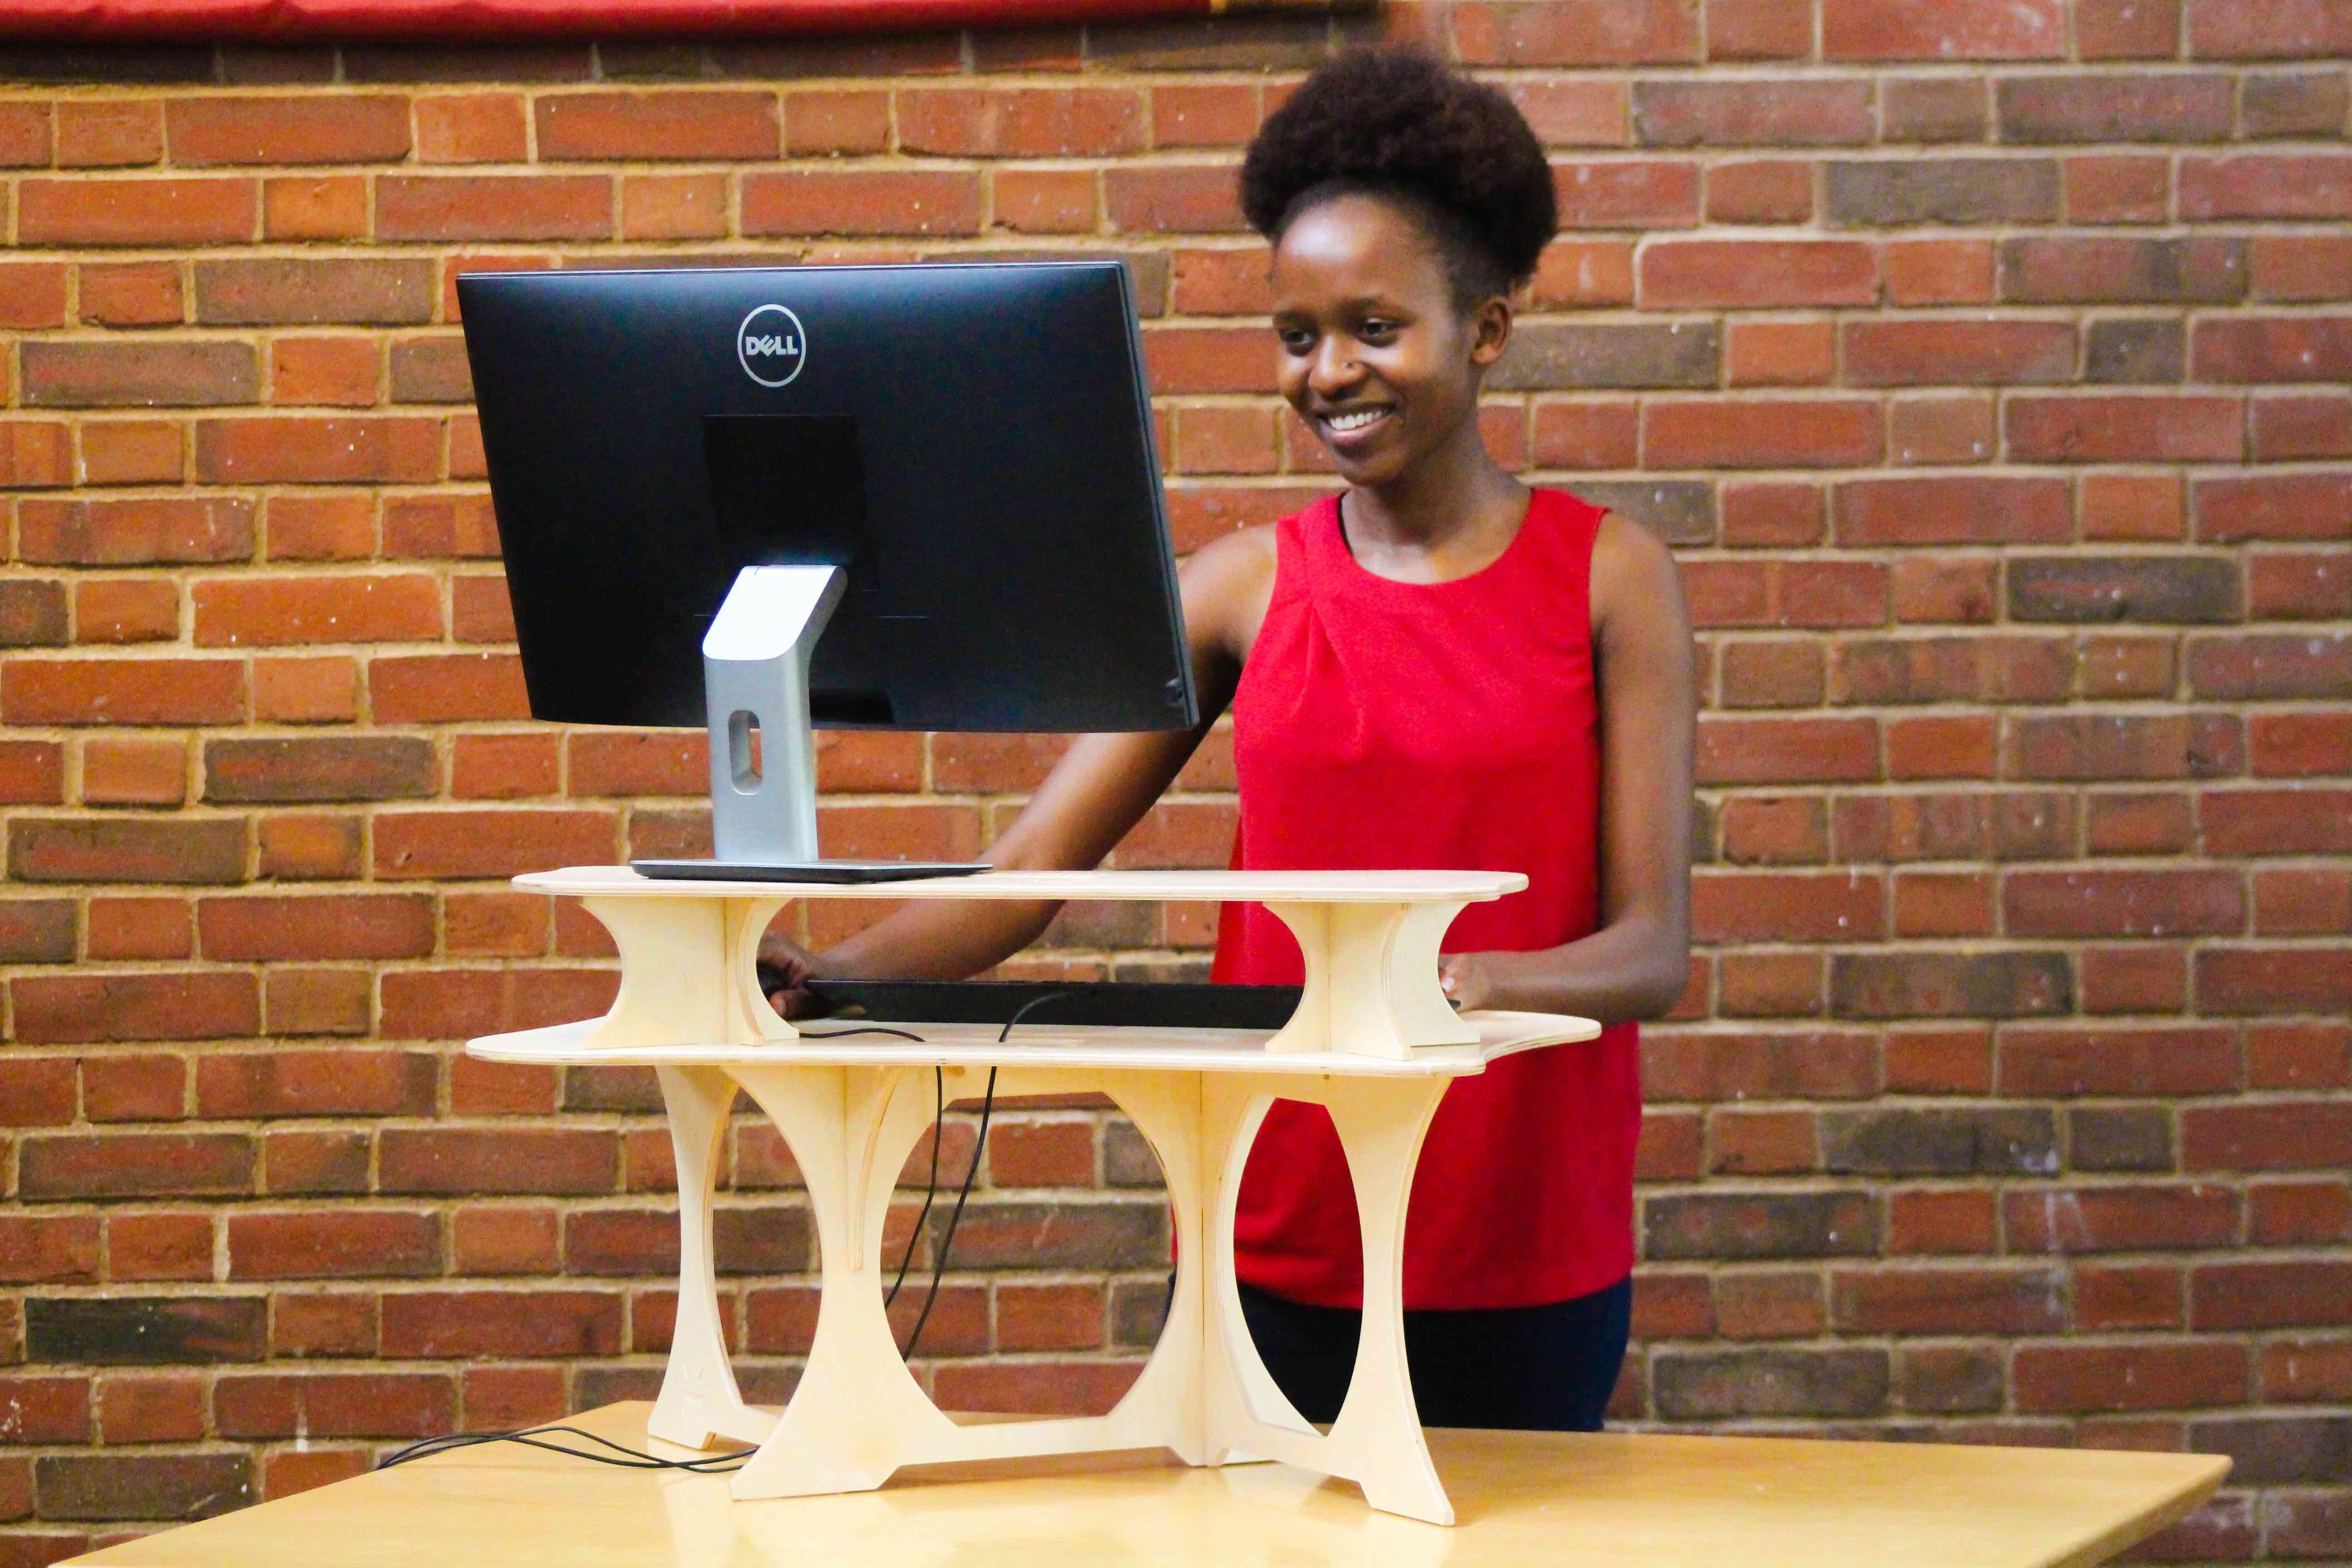 The Portable Standing Desk \u0026 Laptop Stand | StandStand